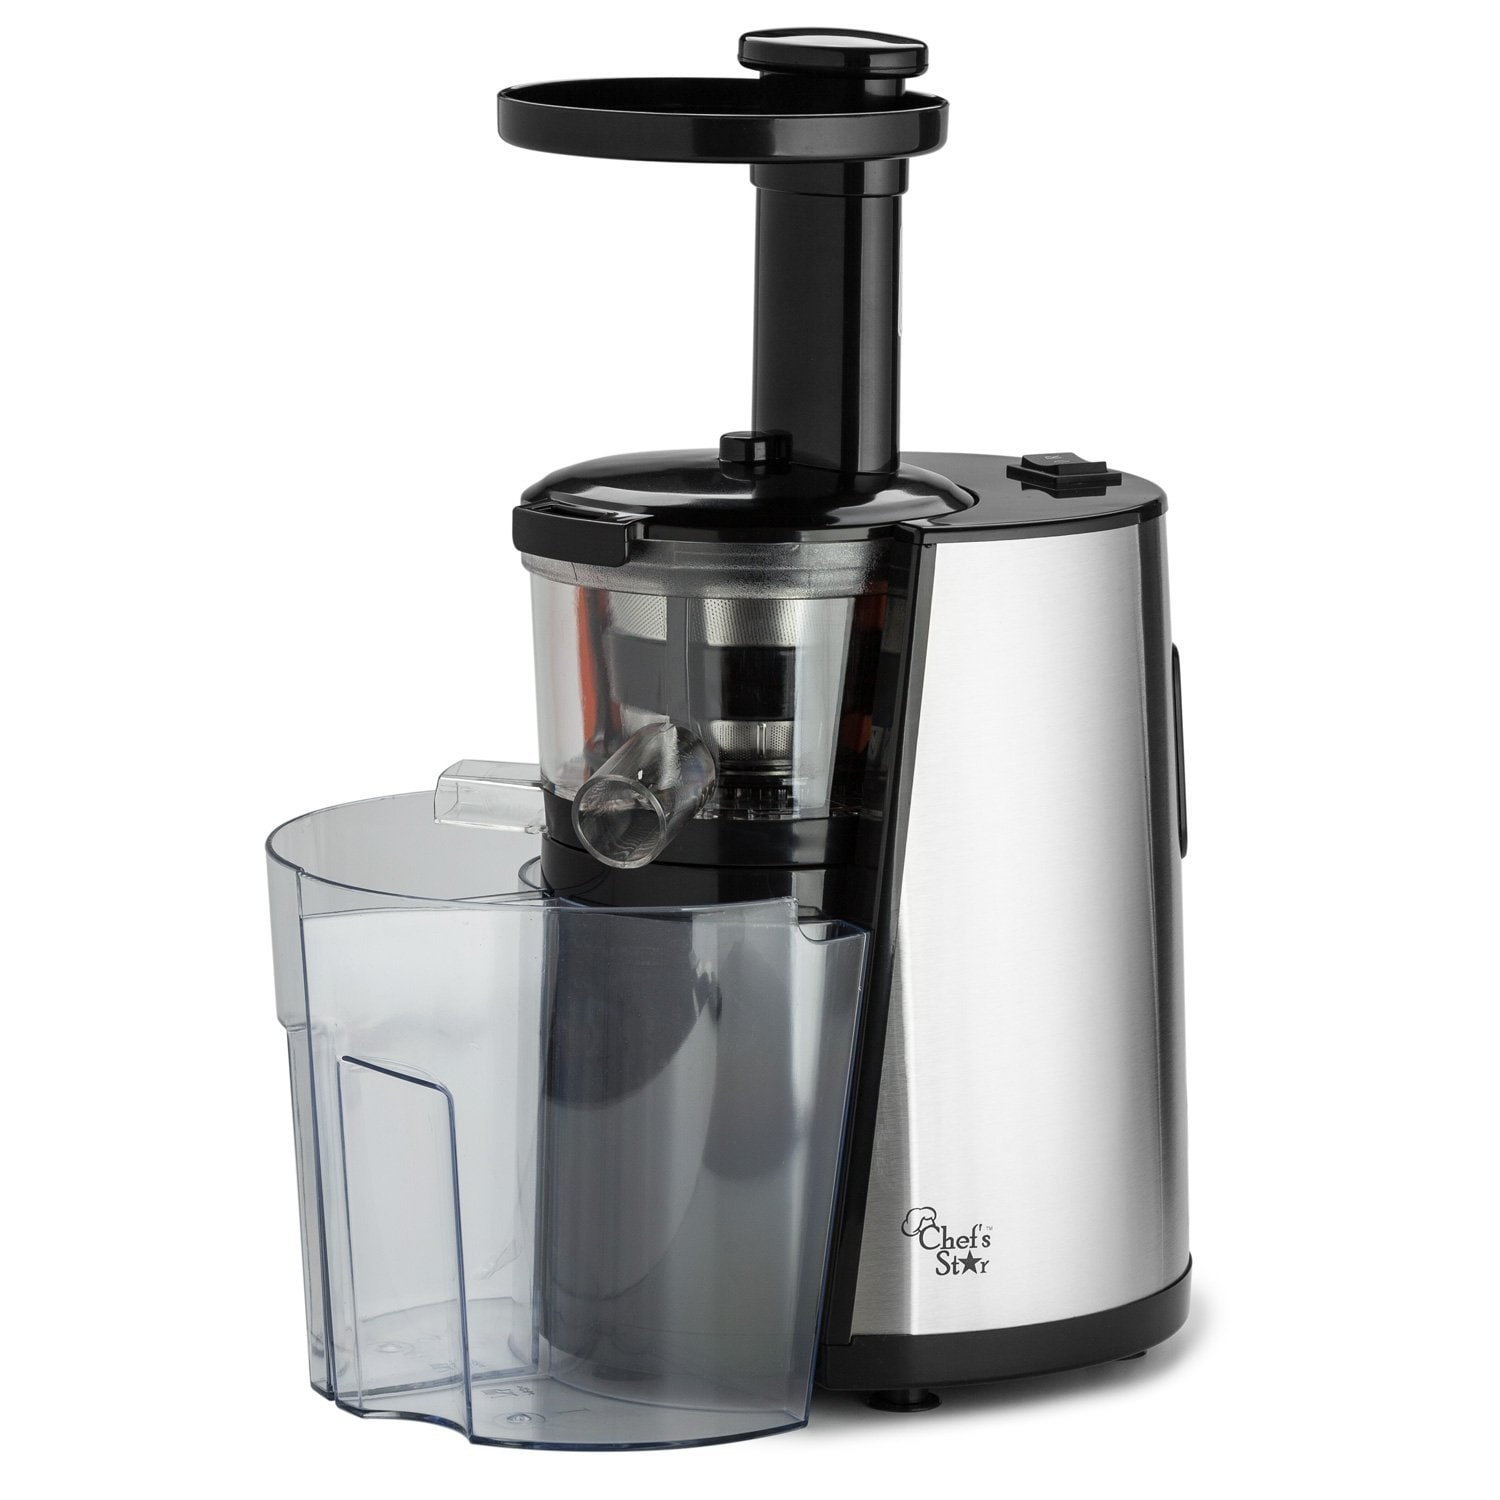 Chef's Star MSJ 501 Black Slow-Speed Button-Control Juice...